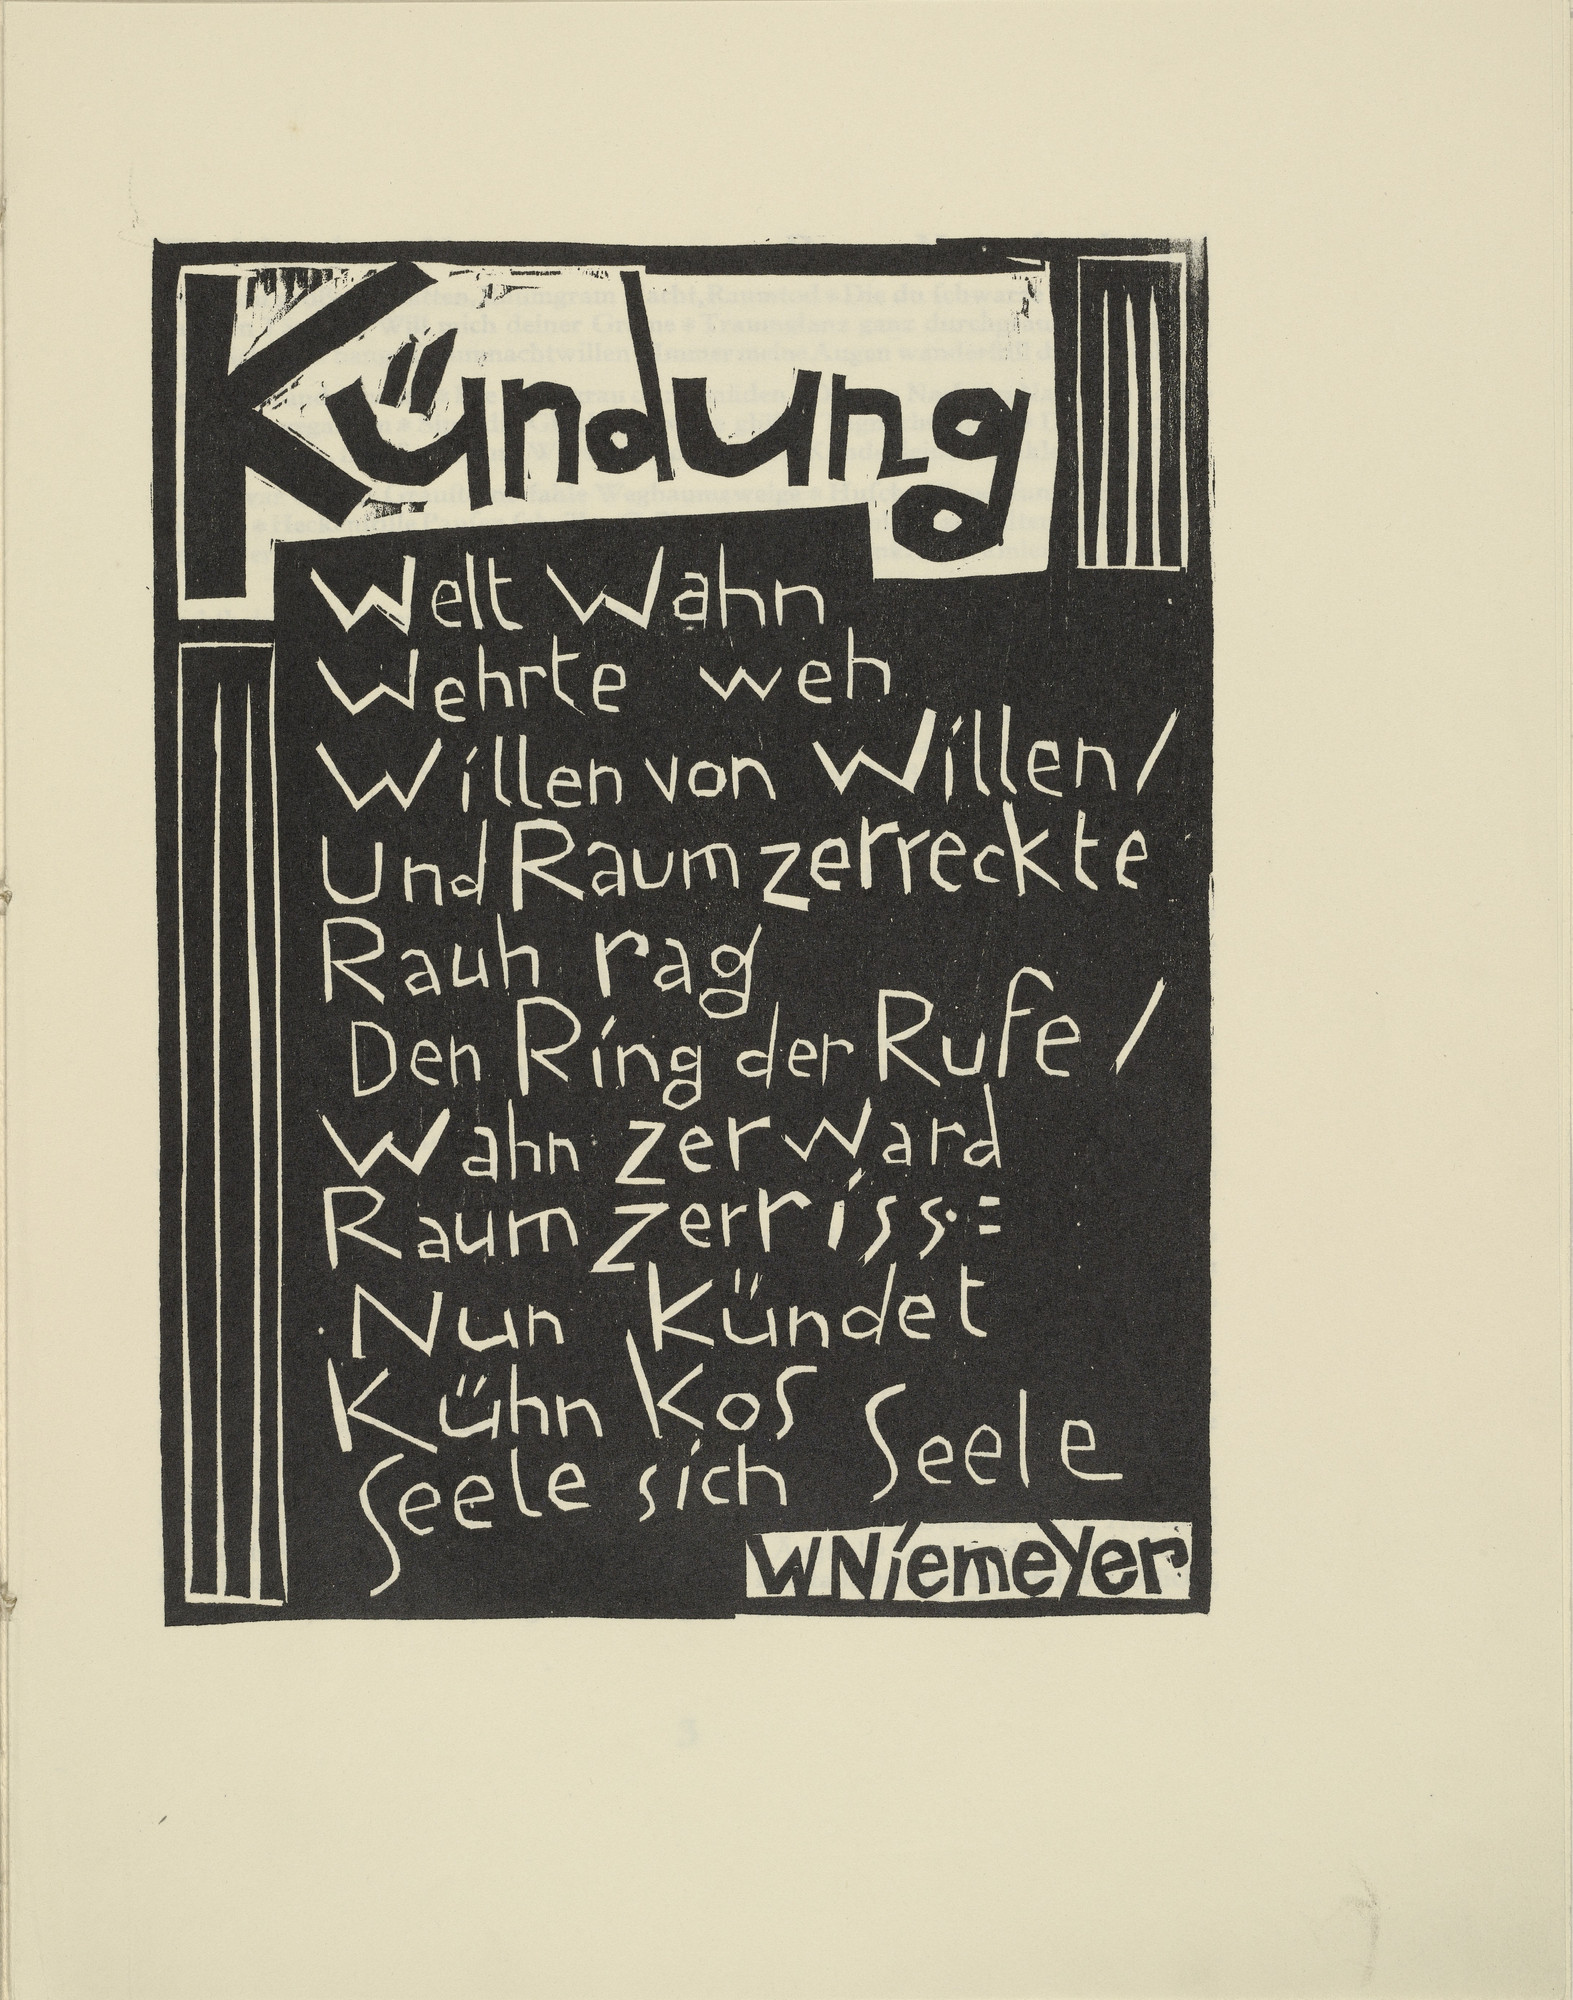 Karl Schmidt-Rottluff. Proclamation (Kündung) from the periodical Kündung, vol. 1, no. 1 (January 1921). 1921 (executed 1920)